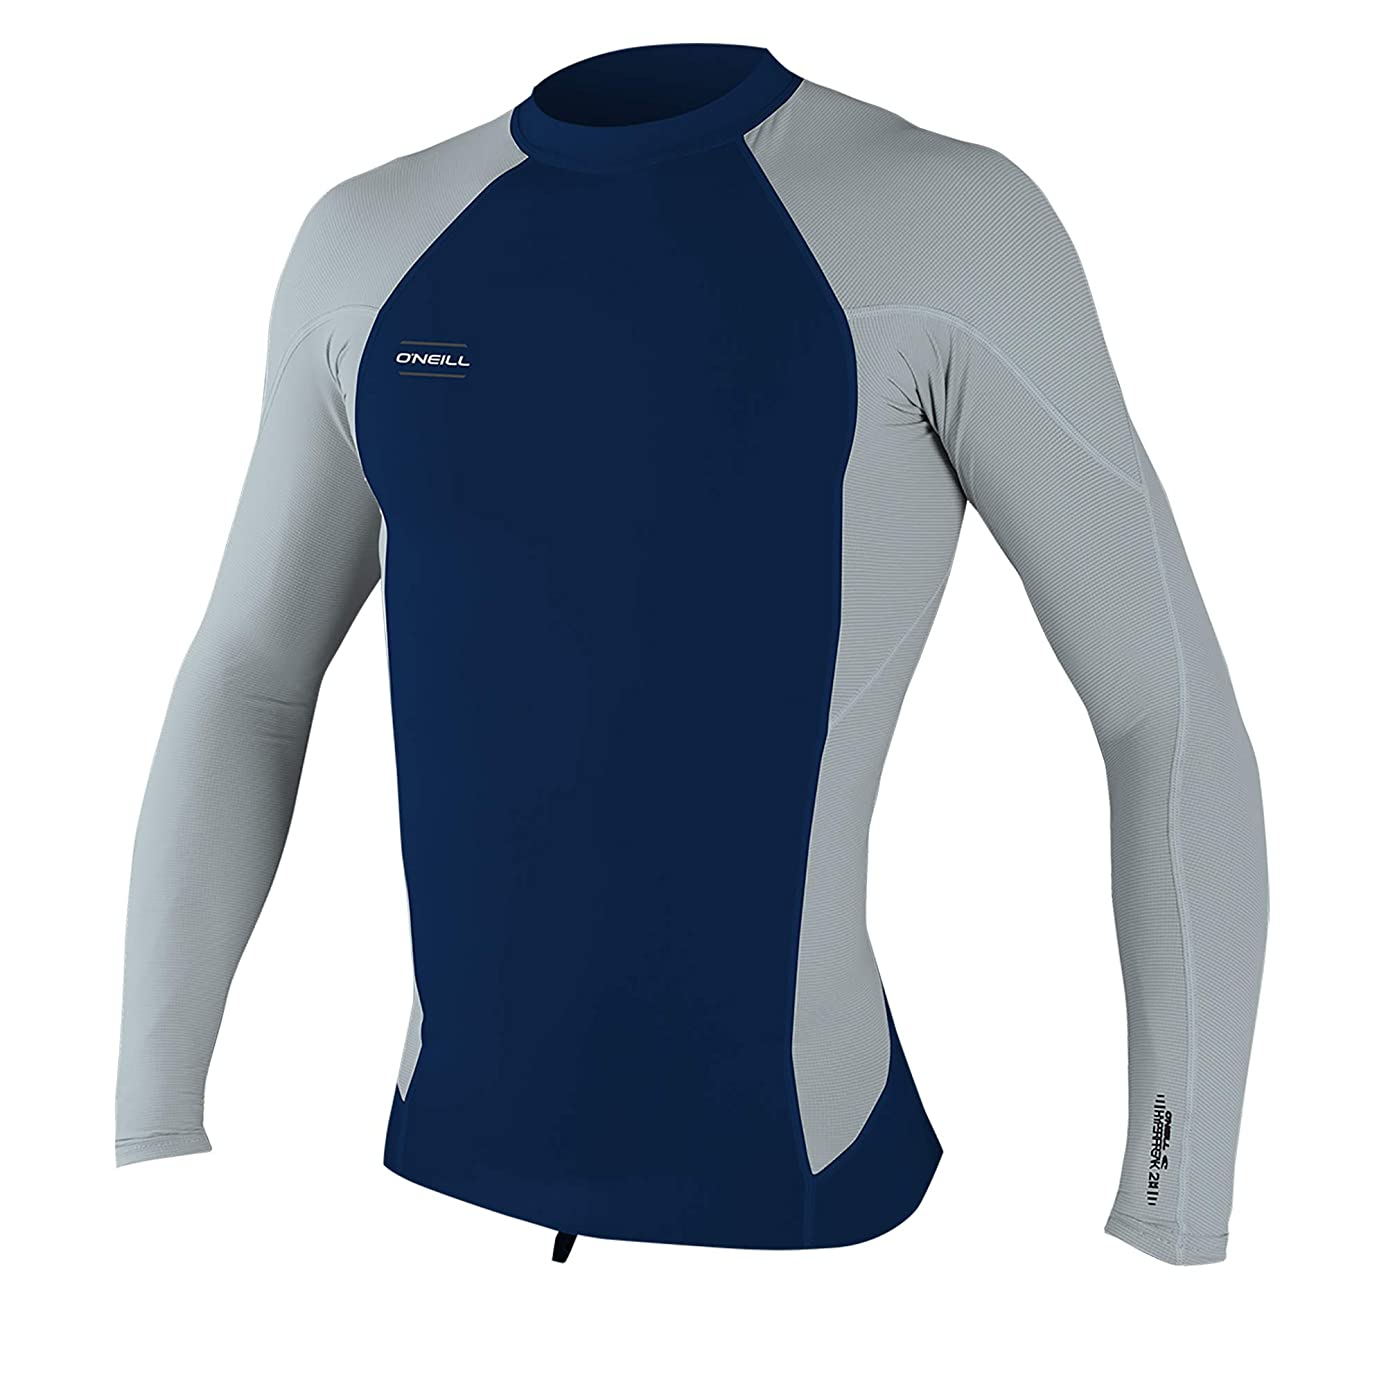 O'Neill Men's Hyperfreak 0.5mm/6 oz Neoprene/Skins Long Sleeve Top